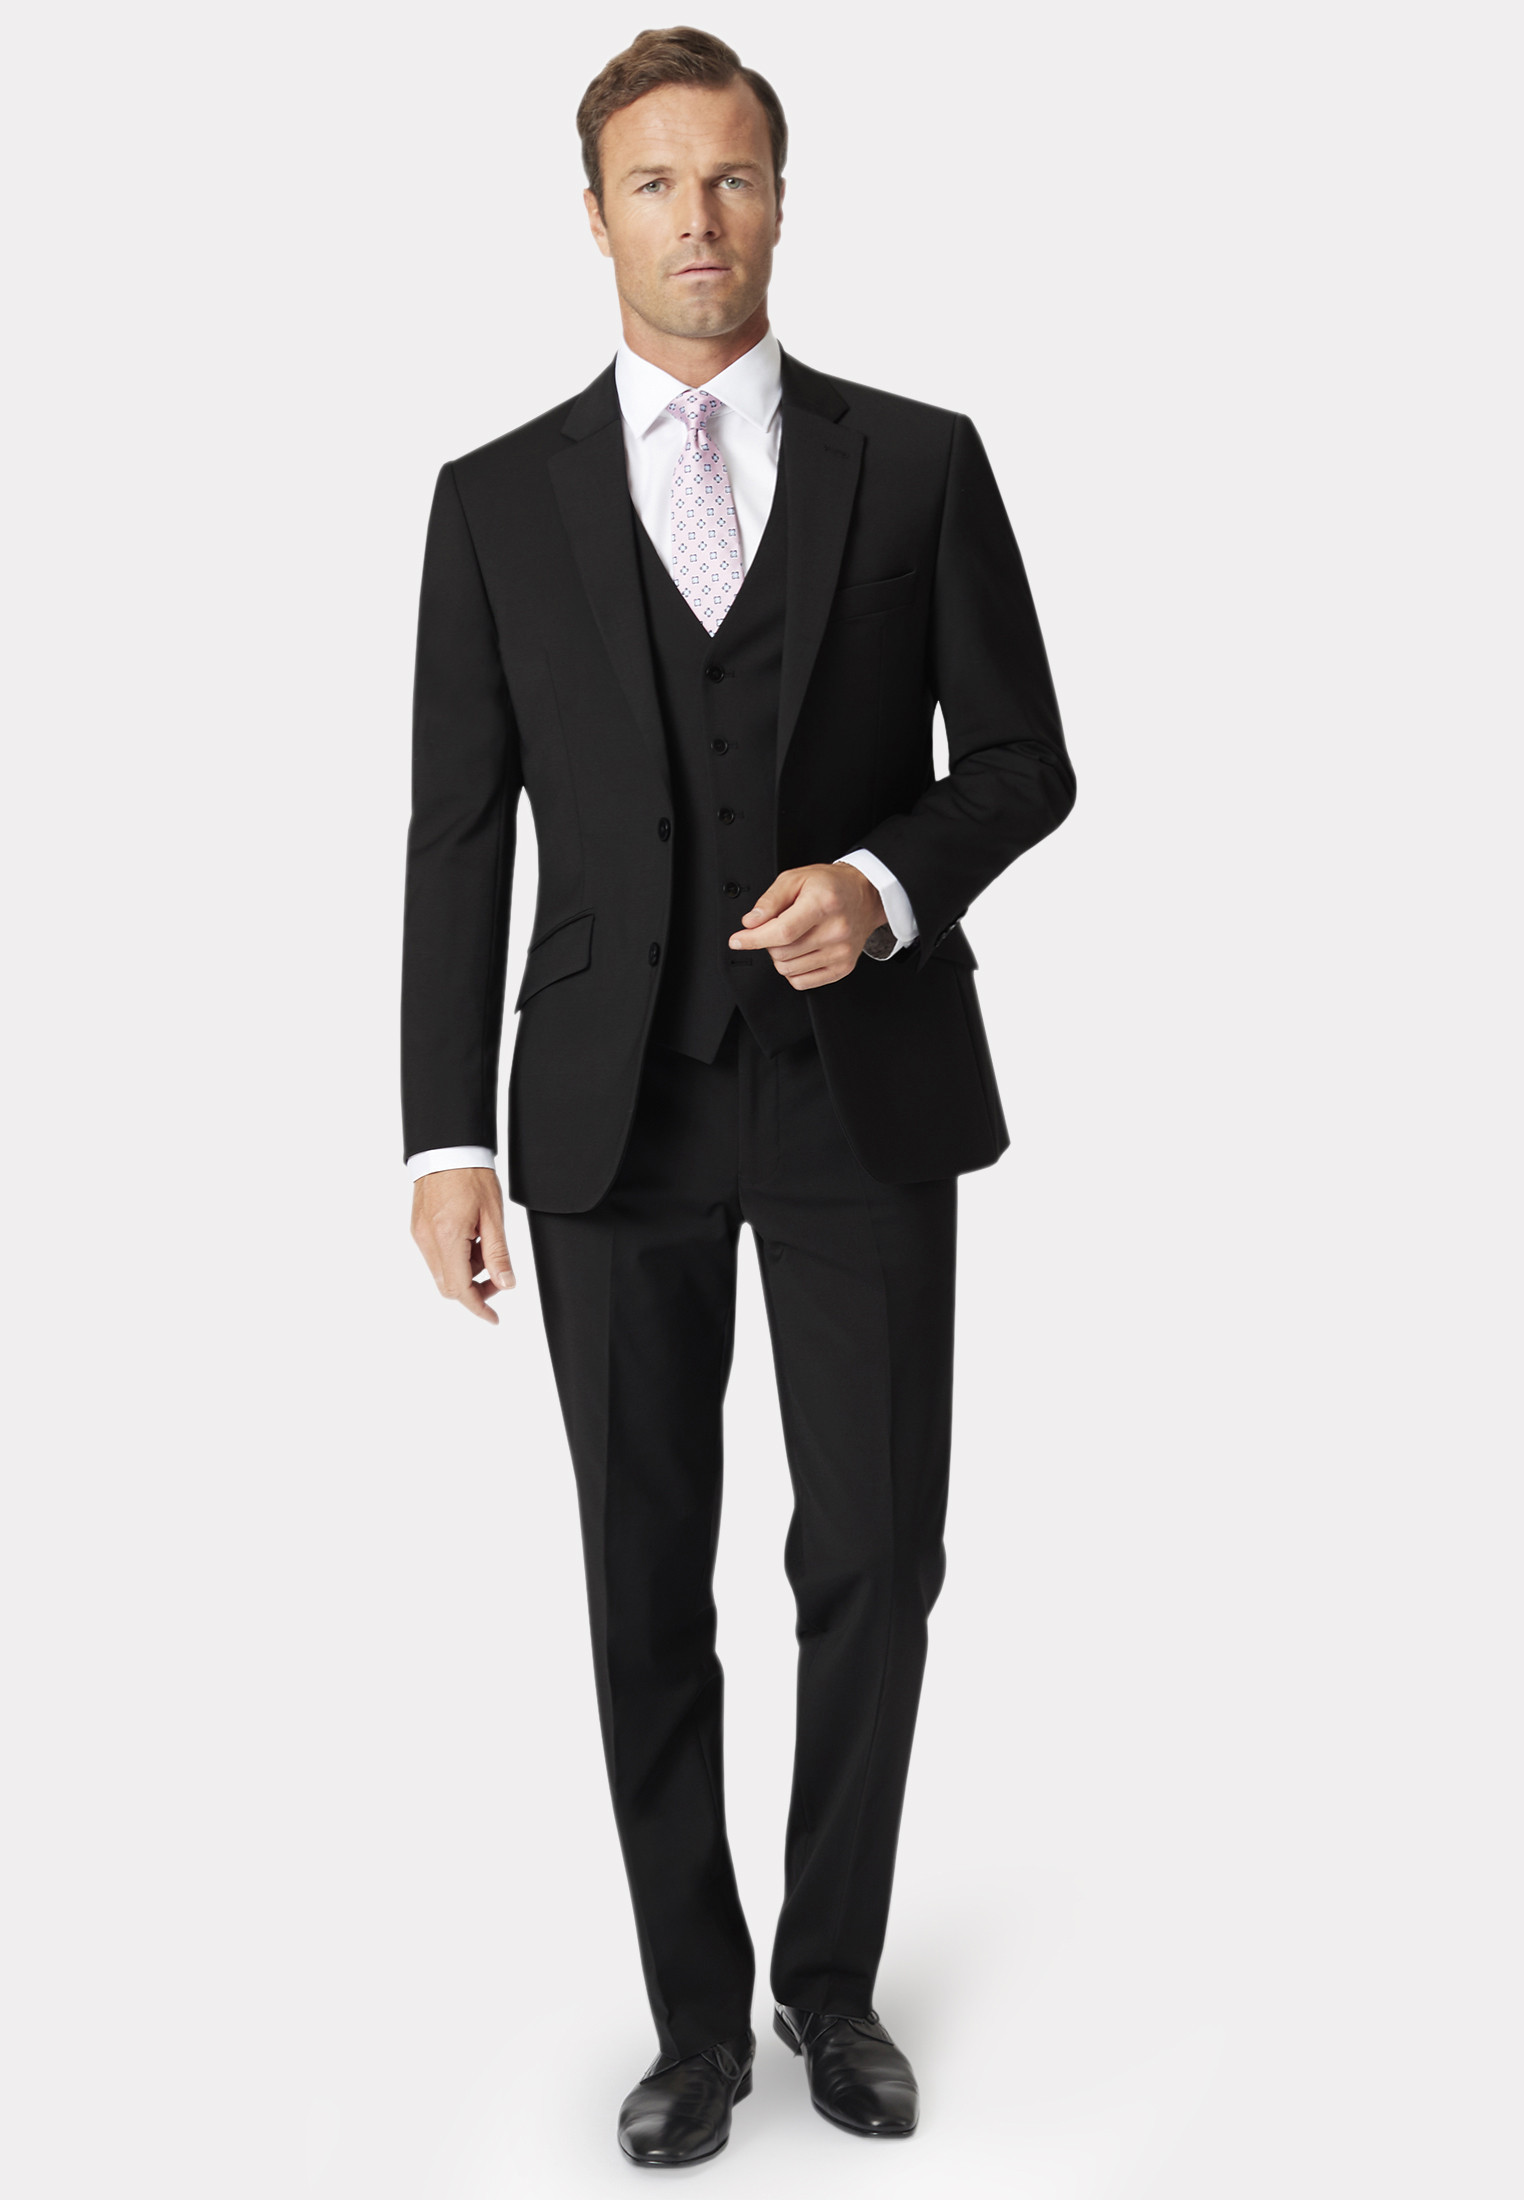 Avalino Black Three Piece Travel Suit - Waistcoat Optional